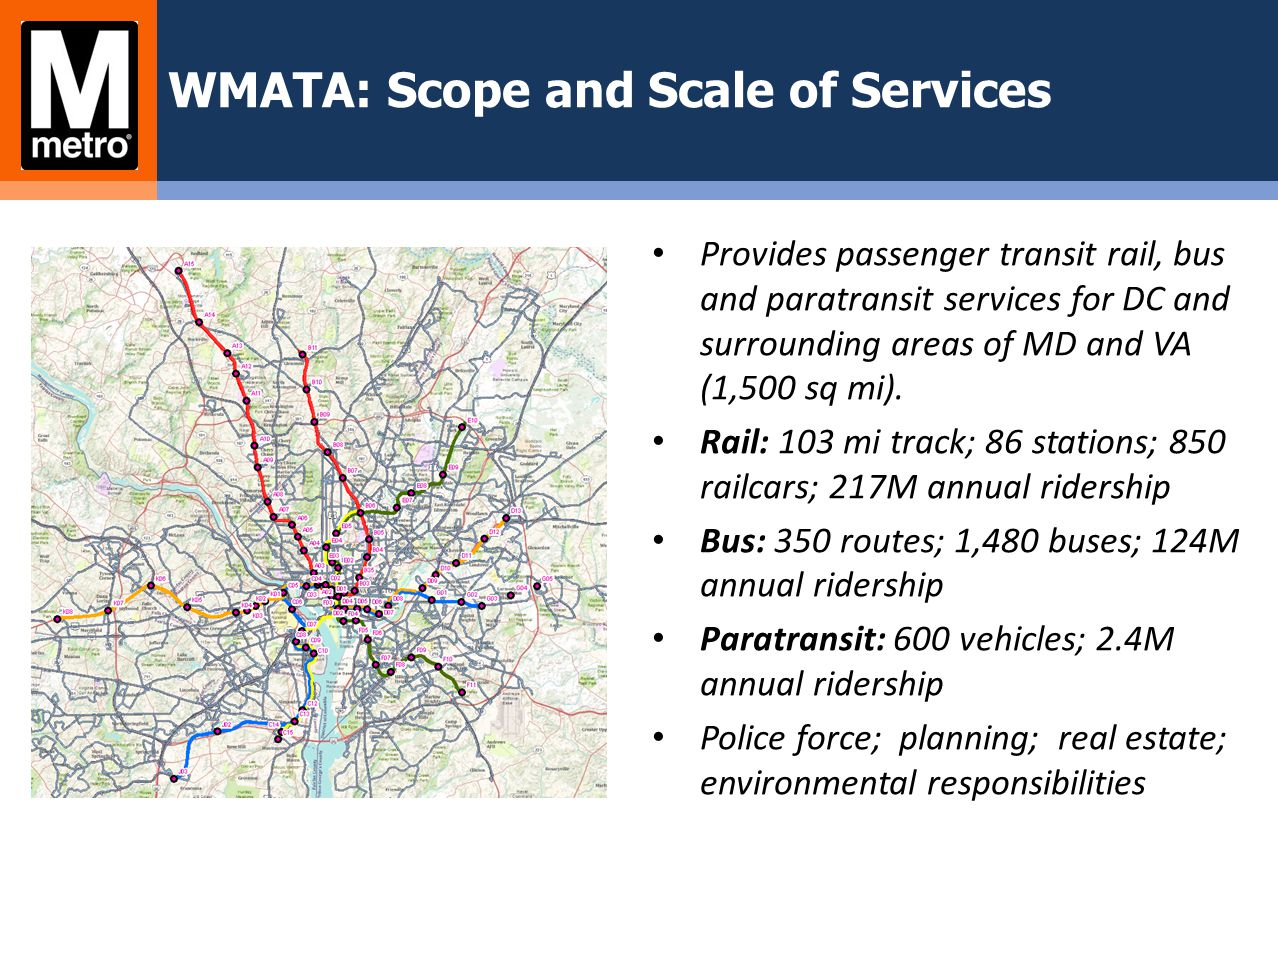 WMATA: Scope and Scale of Services